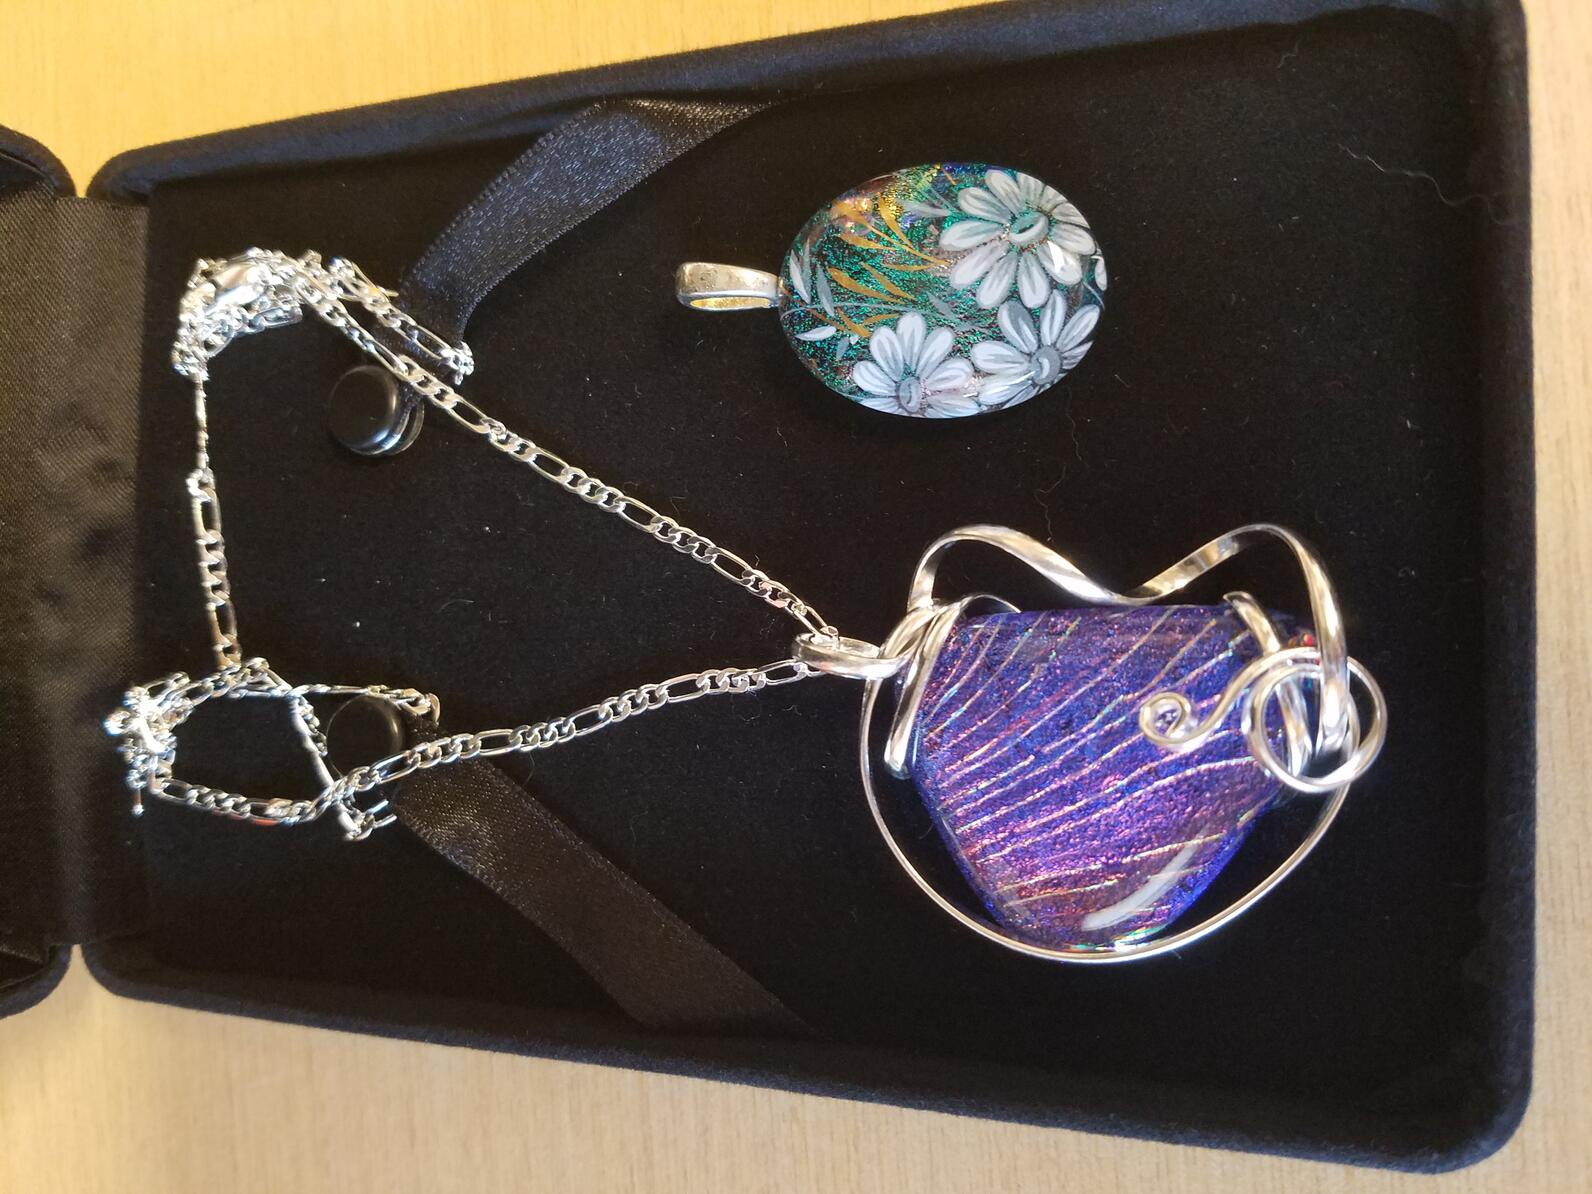 Art Glass pendants & necklace